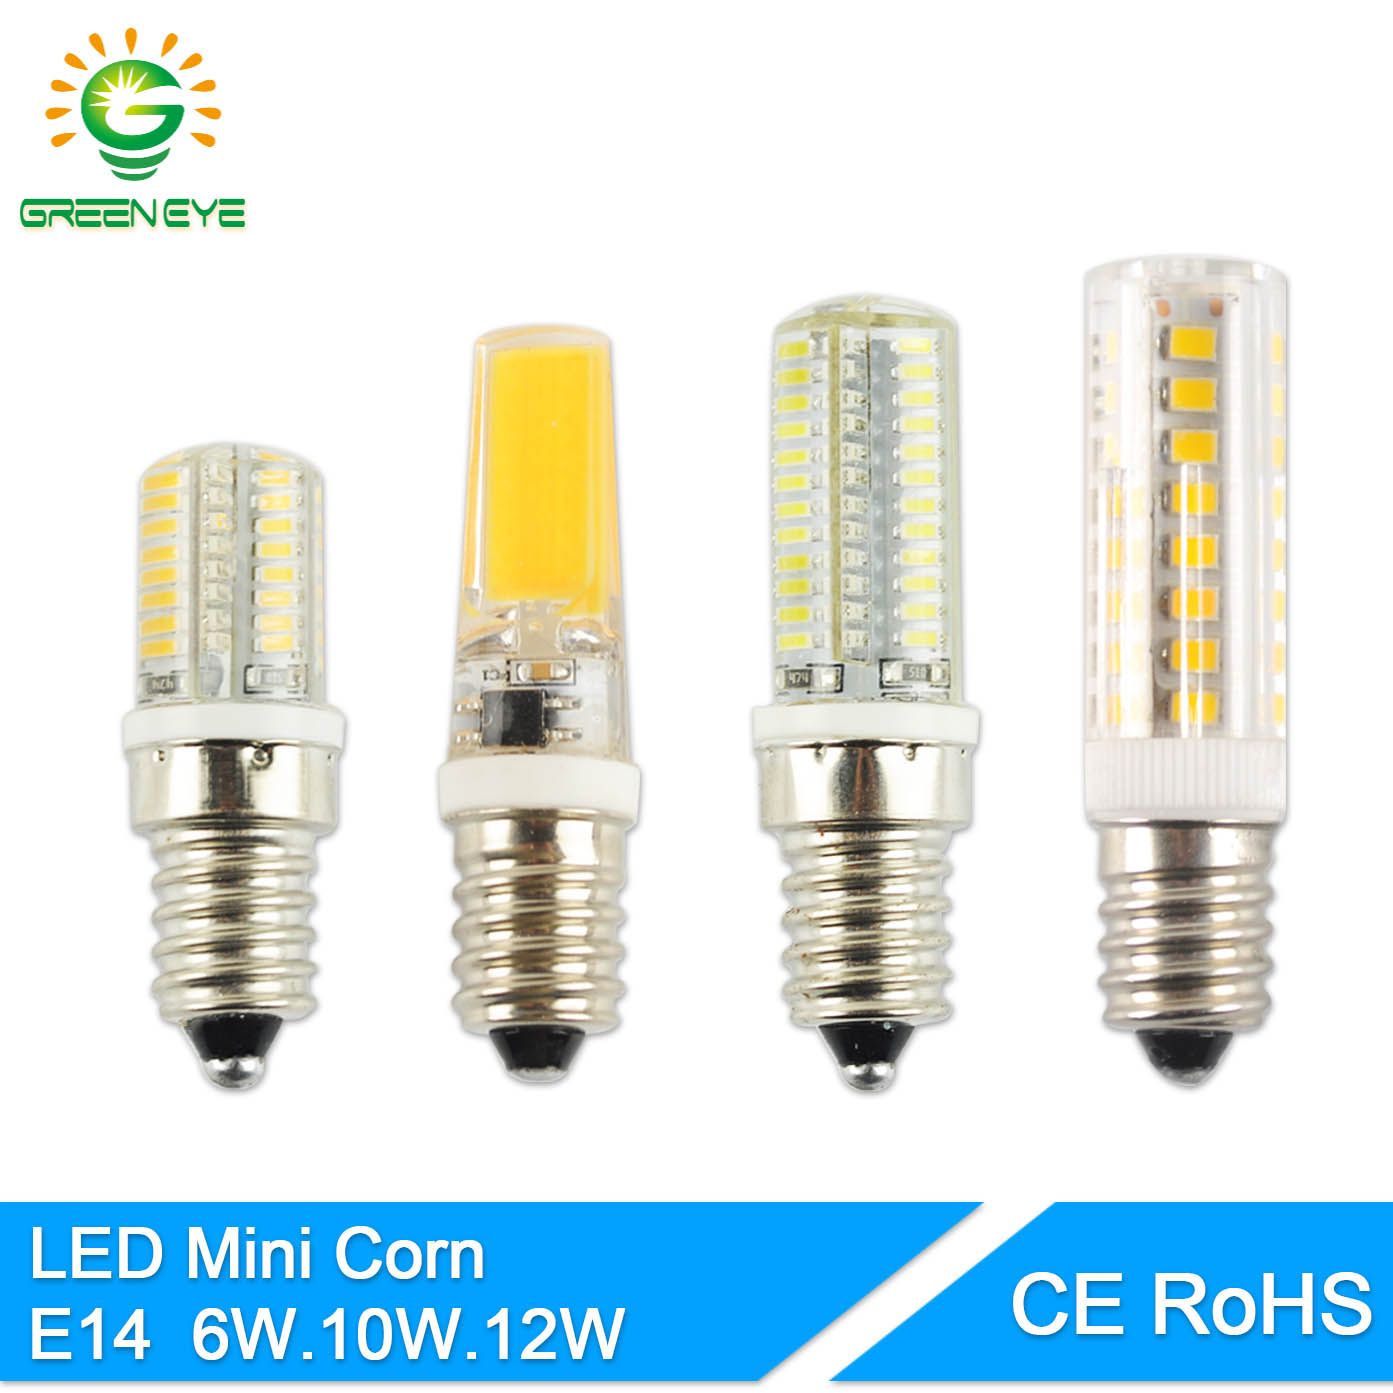 greeneye mini led e14 lamp bulb 220v 6w 10w 12w cob lighting lights replace halogen spotlight. Black Bedroom Furniture Sets. Home Design Ideas